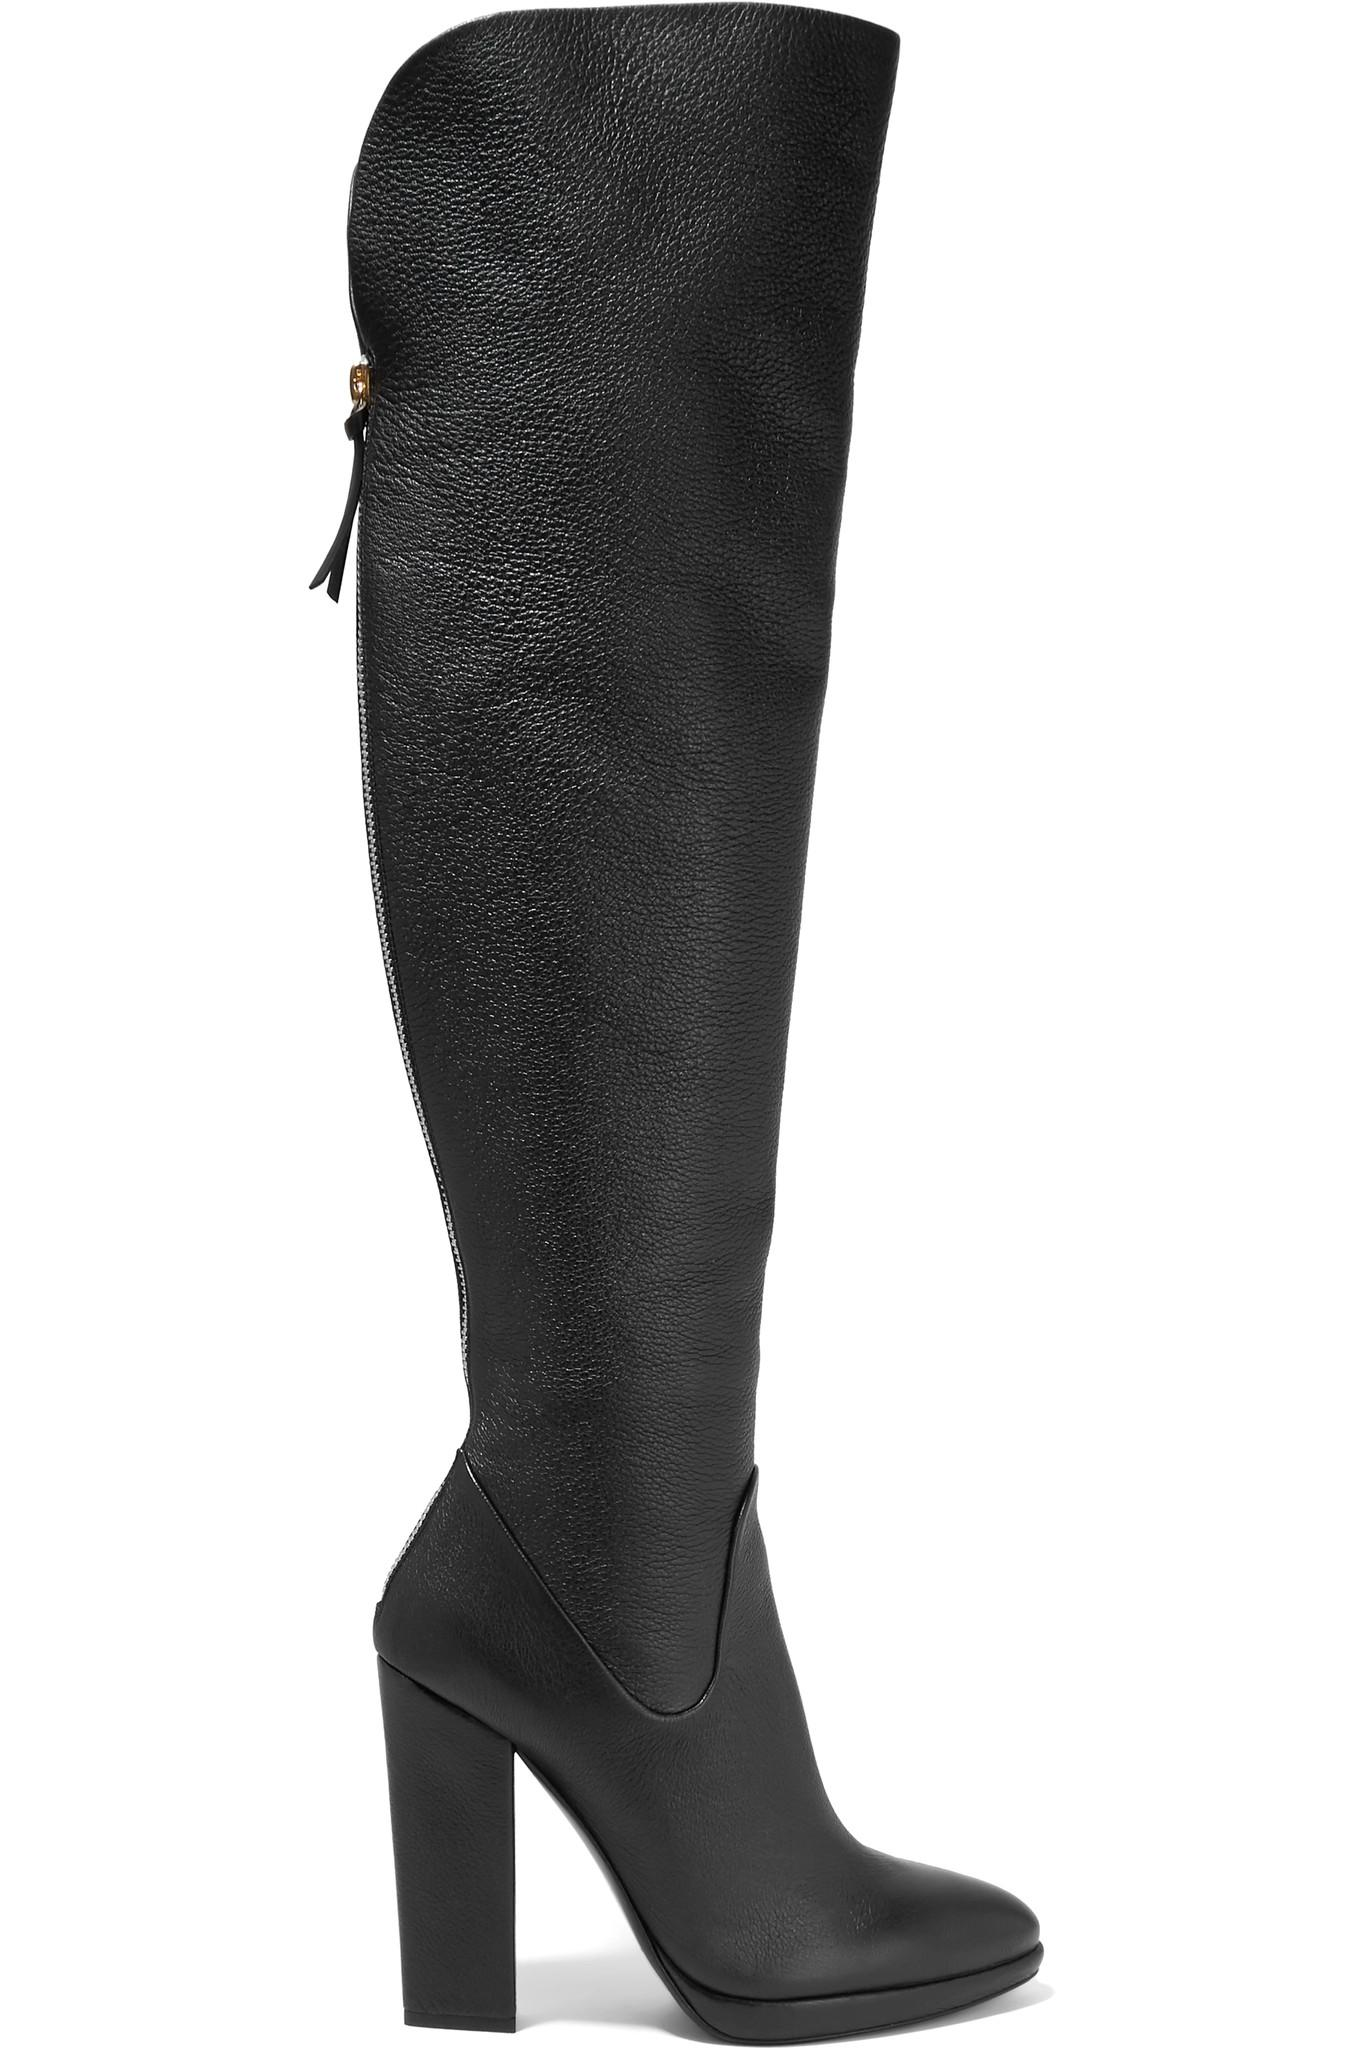 New Promotions Giuseppe Zanotti Boots Black Glossed leather